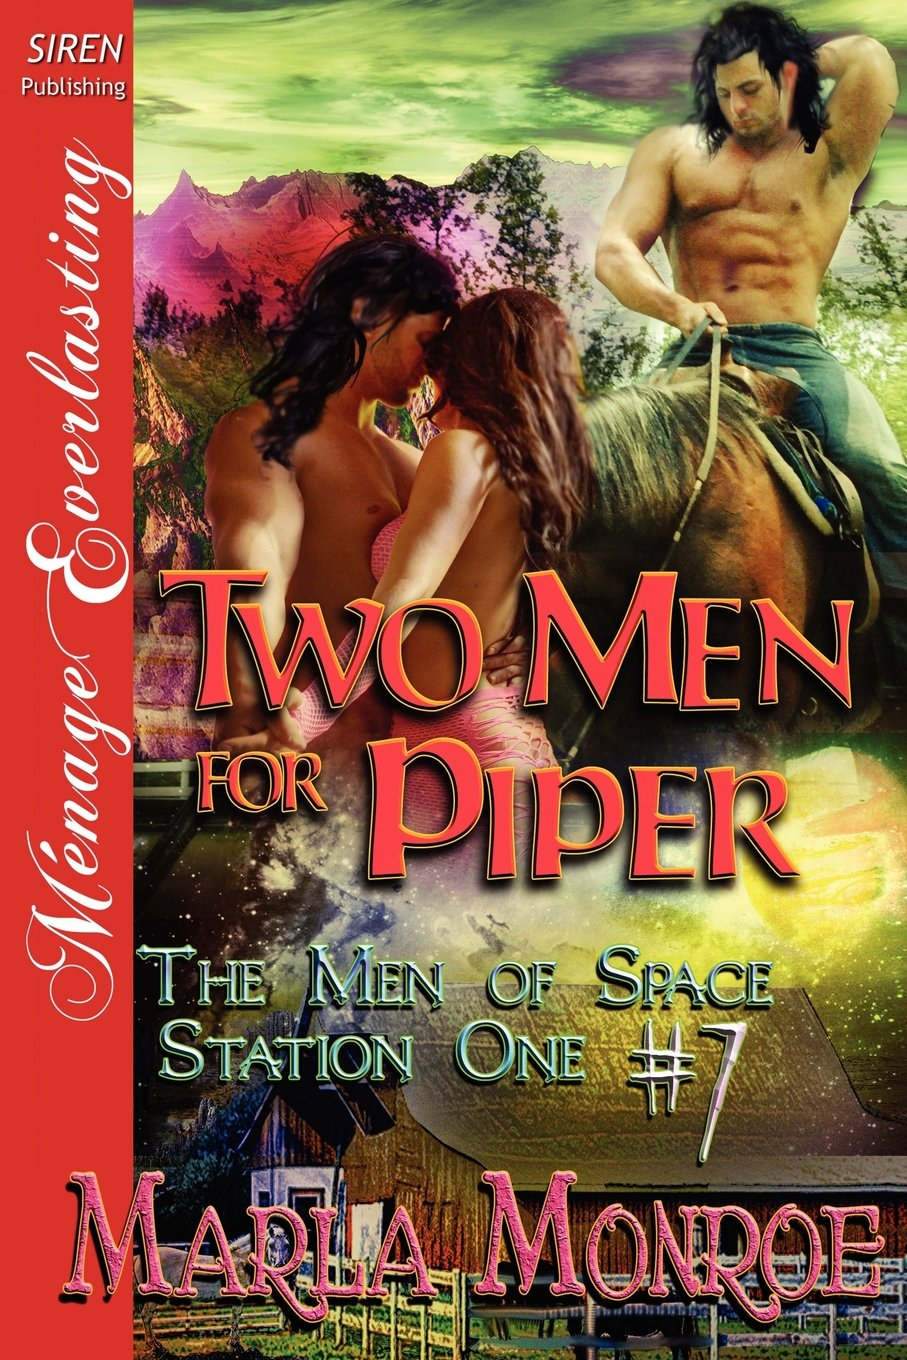 Two Men for Piper [The Men of Space Station One #7] (Siren Publishing Menage Everlasting) PDF